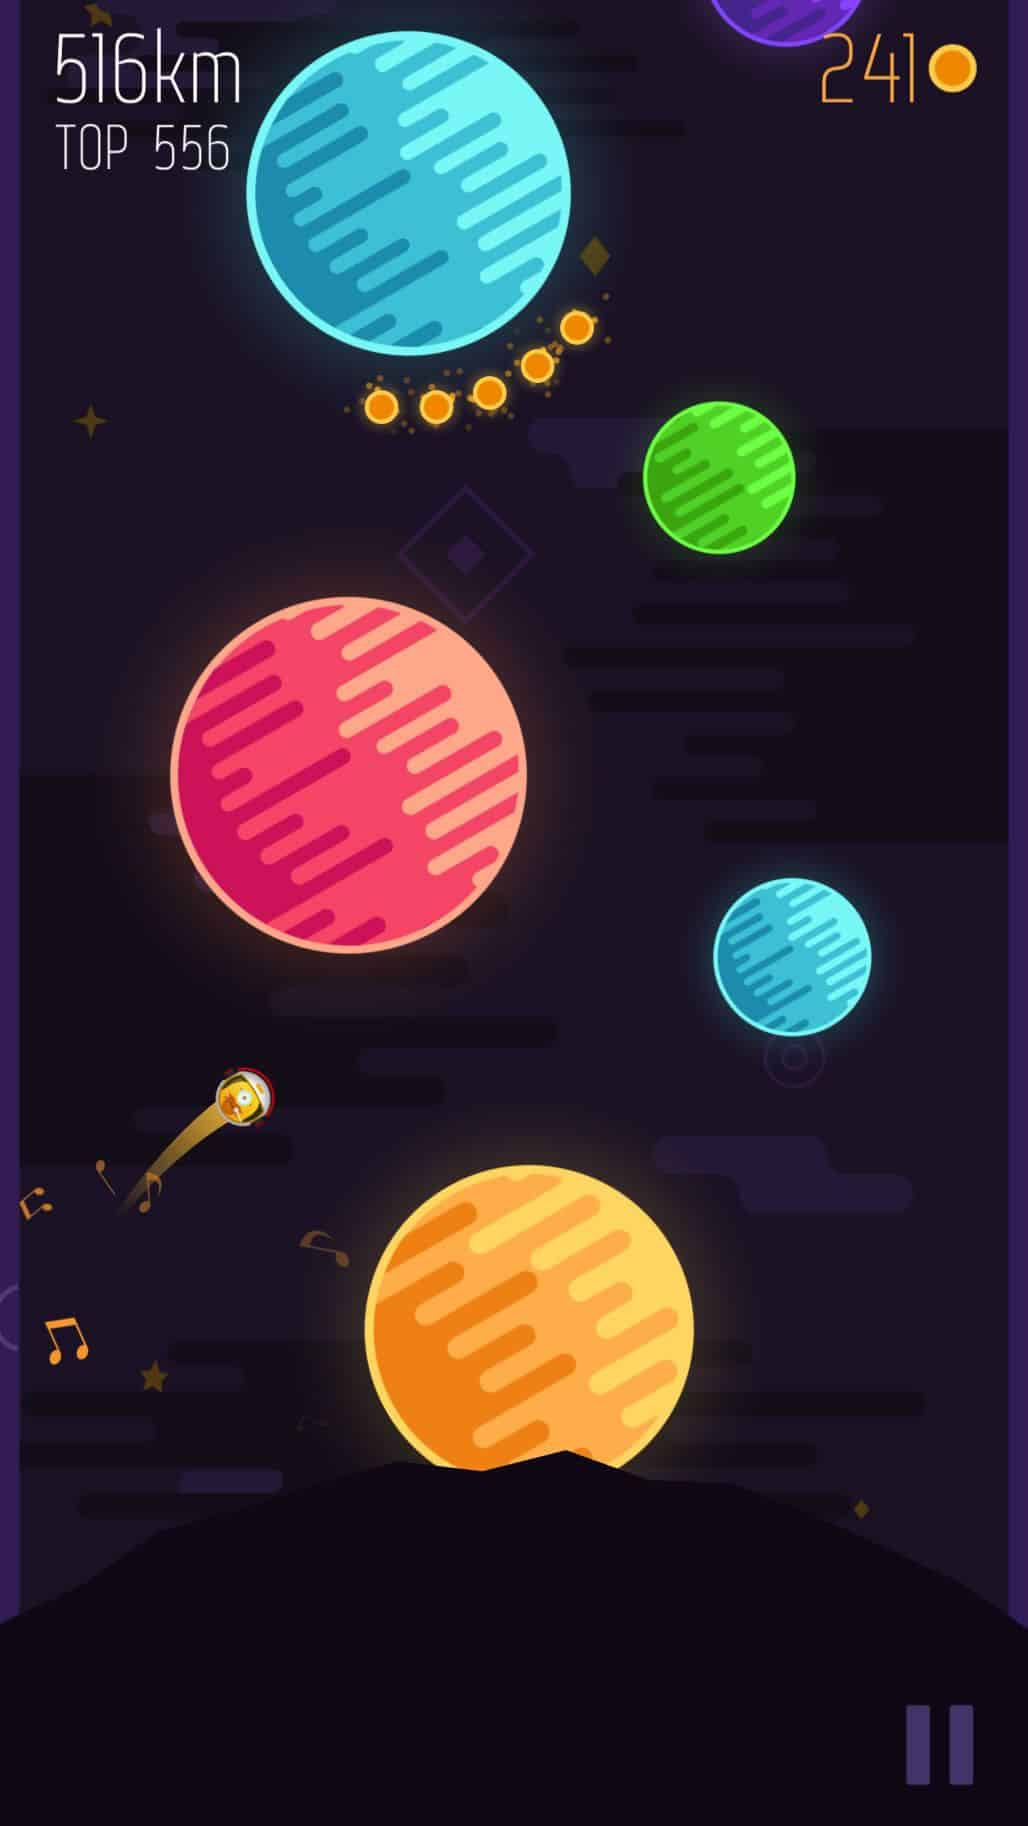 The colorful planets gives a good sense of fun to the app design of Planet Leap